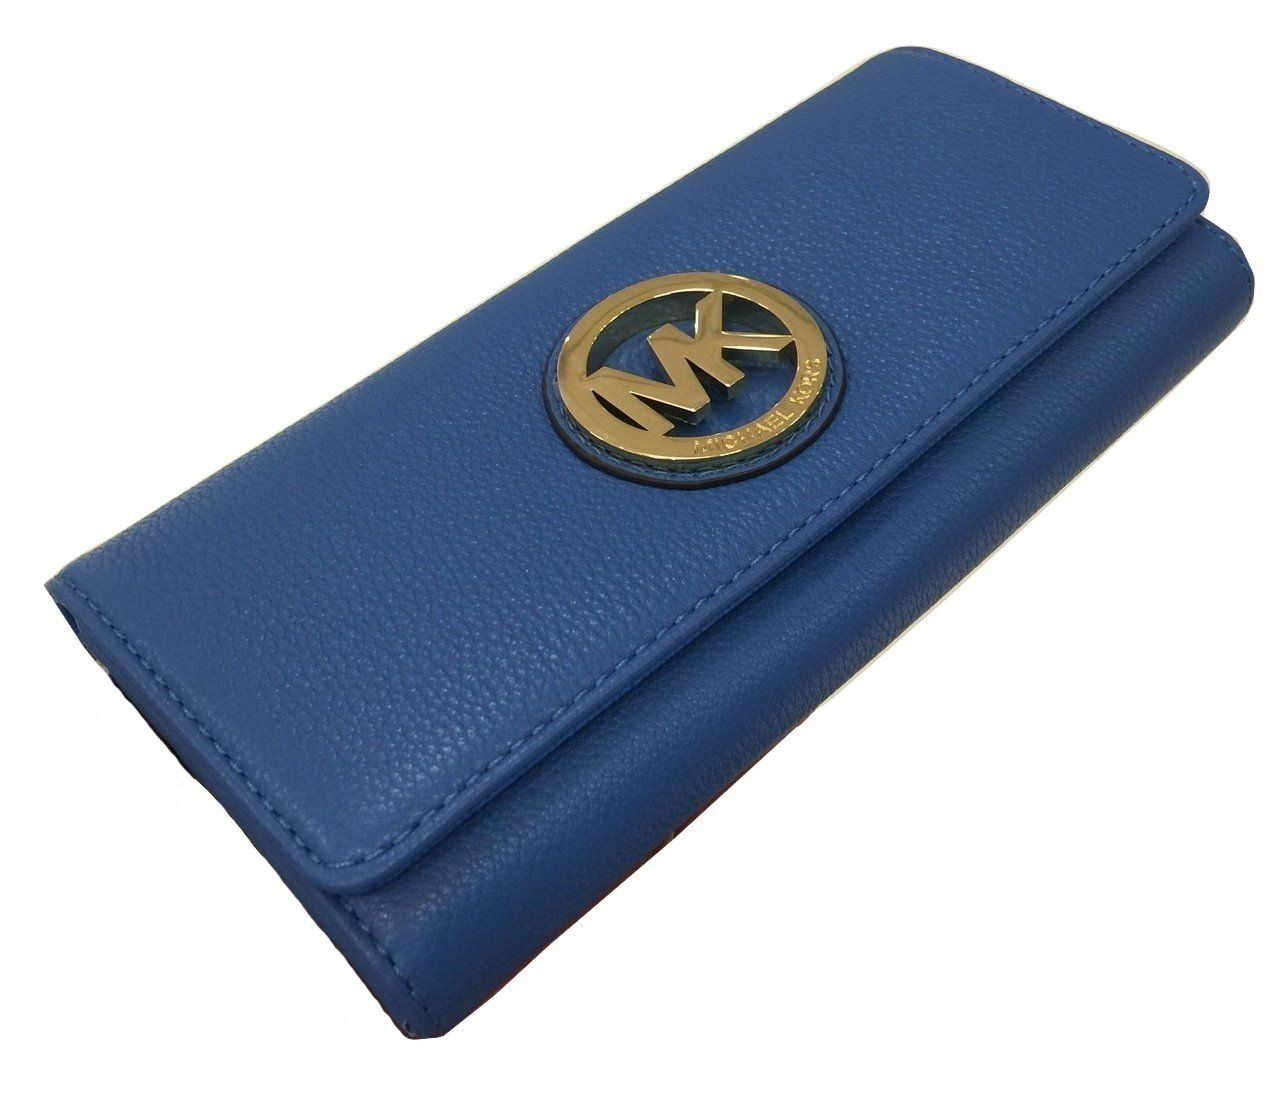 6c9730d3258a Michael Kors Fulton Flap Continental Heritage Blue Leather Clutch Wallet